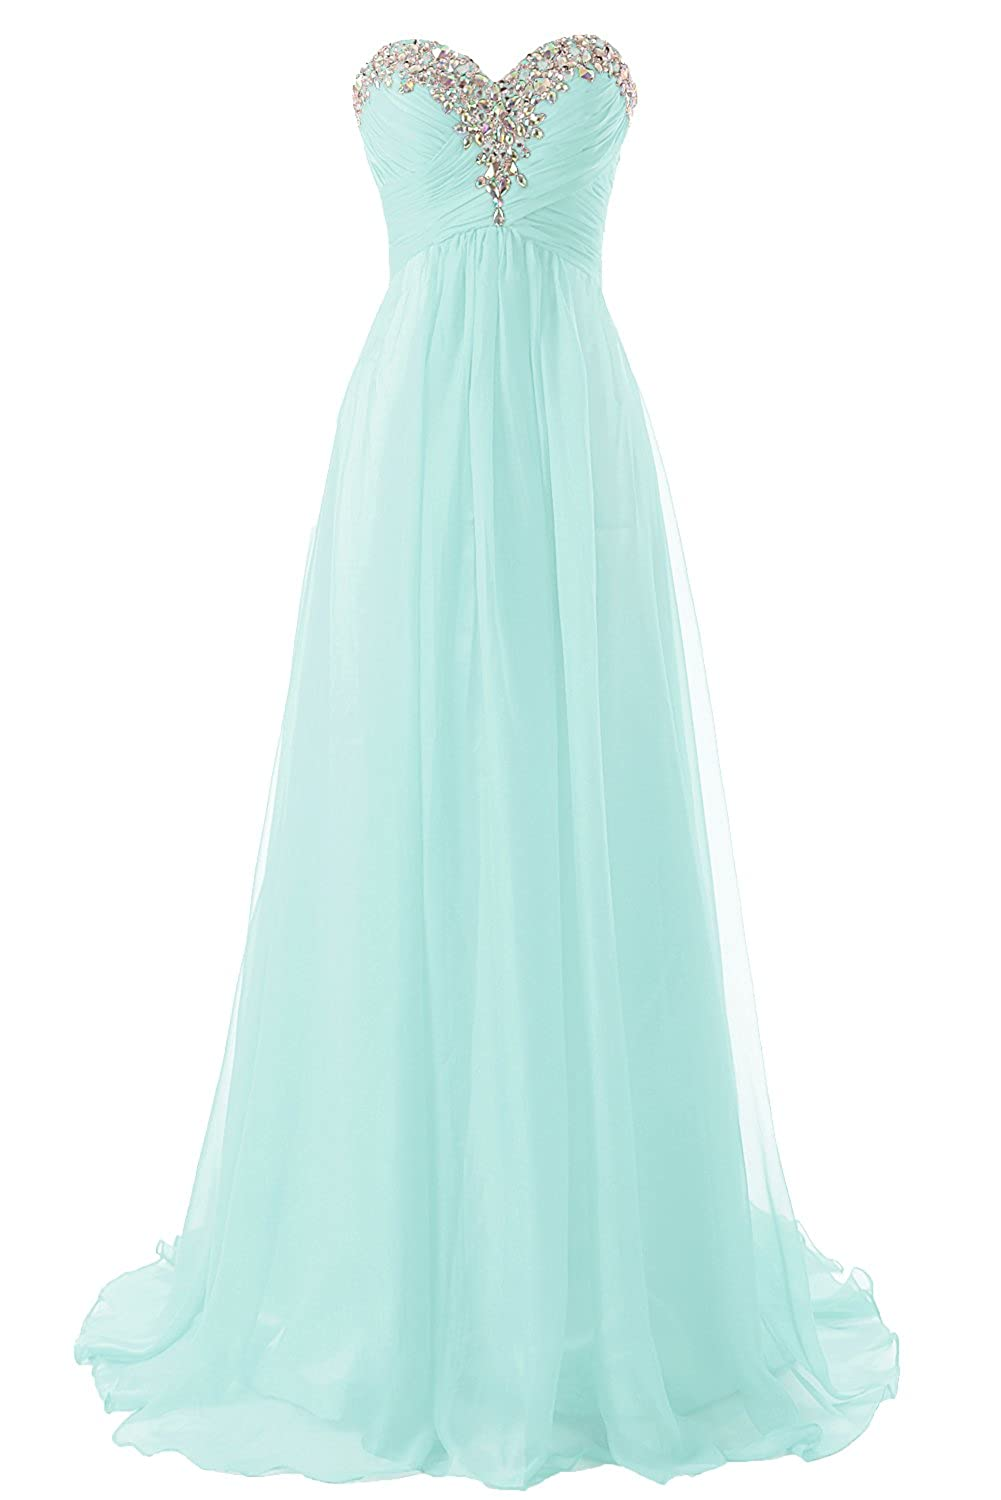 JAEDEN Sweetheart Formal Evening Dresses Strapless Long Prom Gown ...